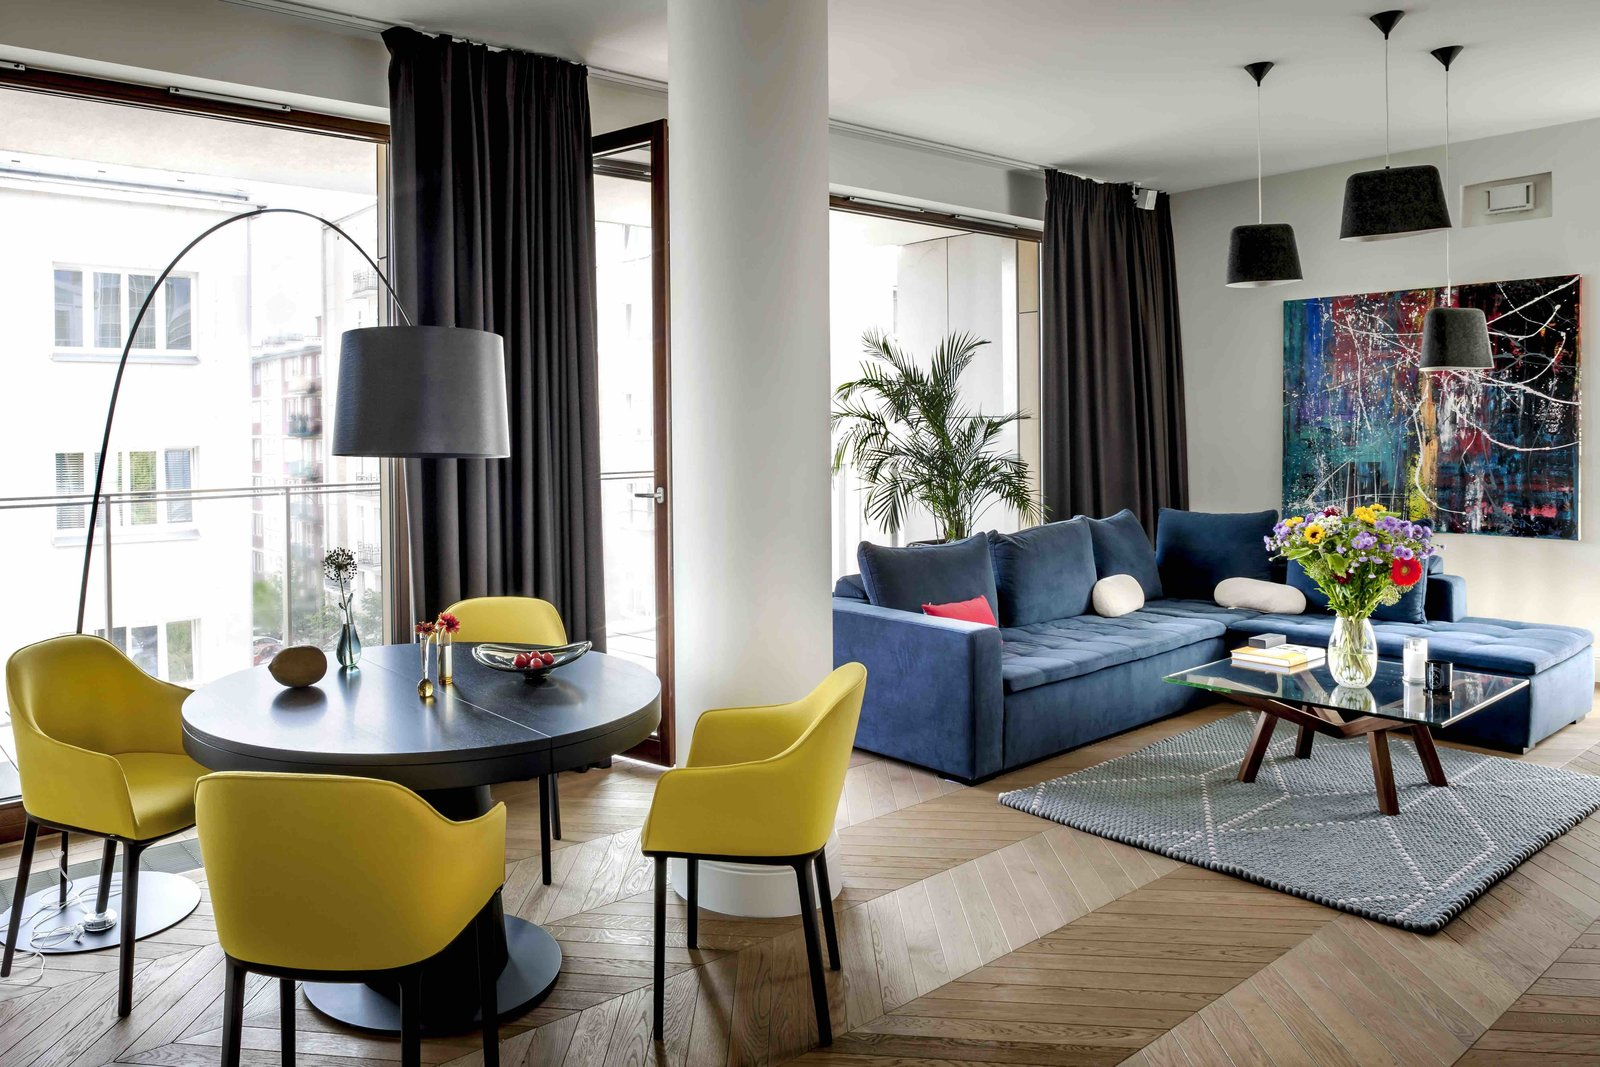 Filled With Color and Pattern This Eclectic Apartment Brings a Little Madrid to Warsaw & Filled With Color and Pattern This Eclectic Apartment Brings a ...